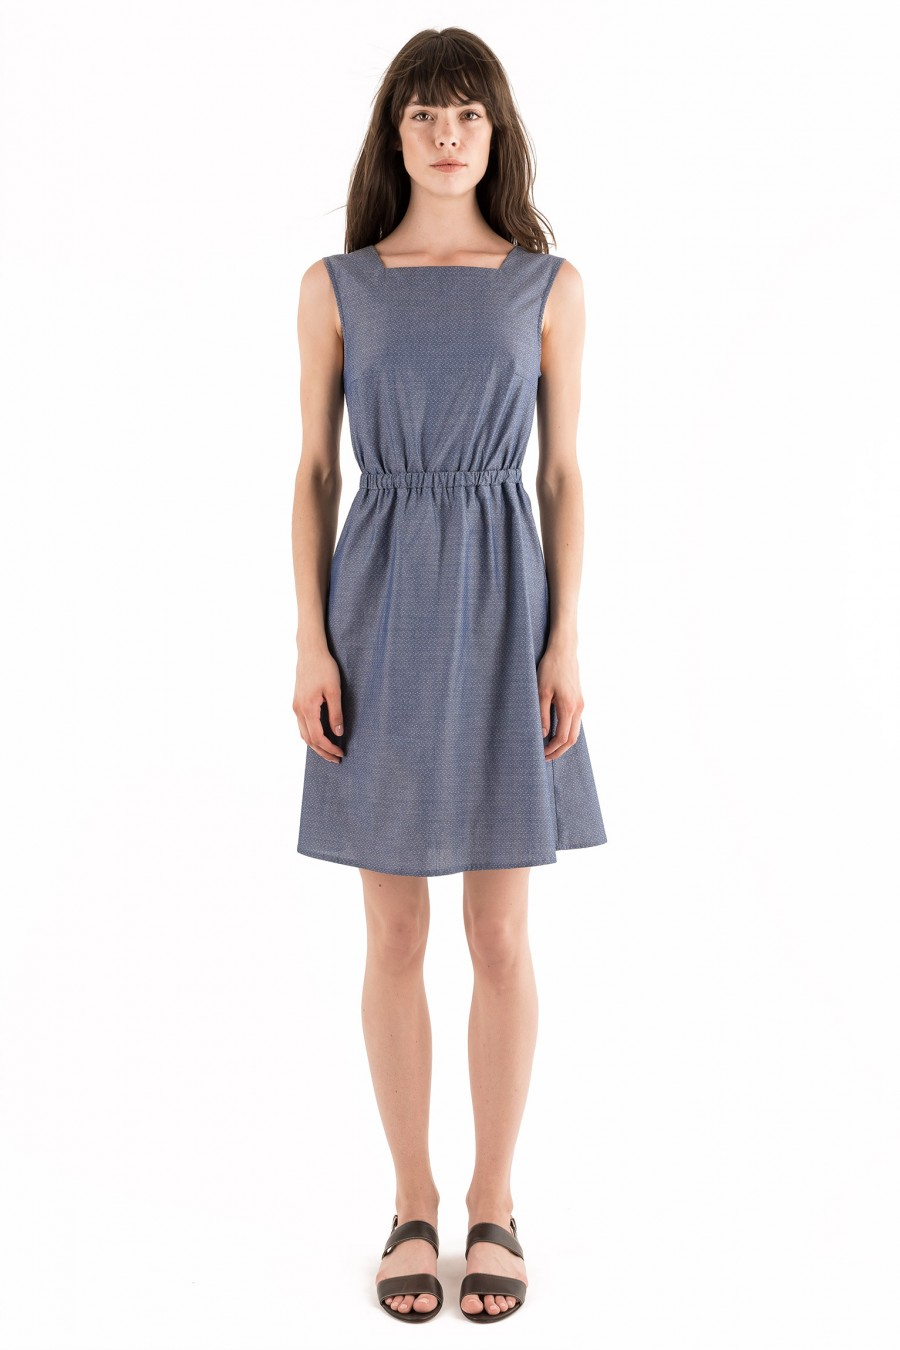 Cotton dress with bow and buttons on the back